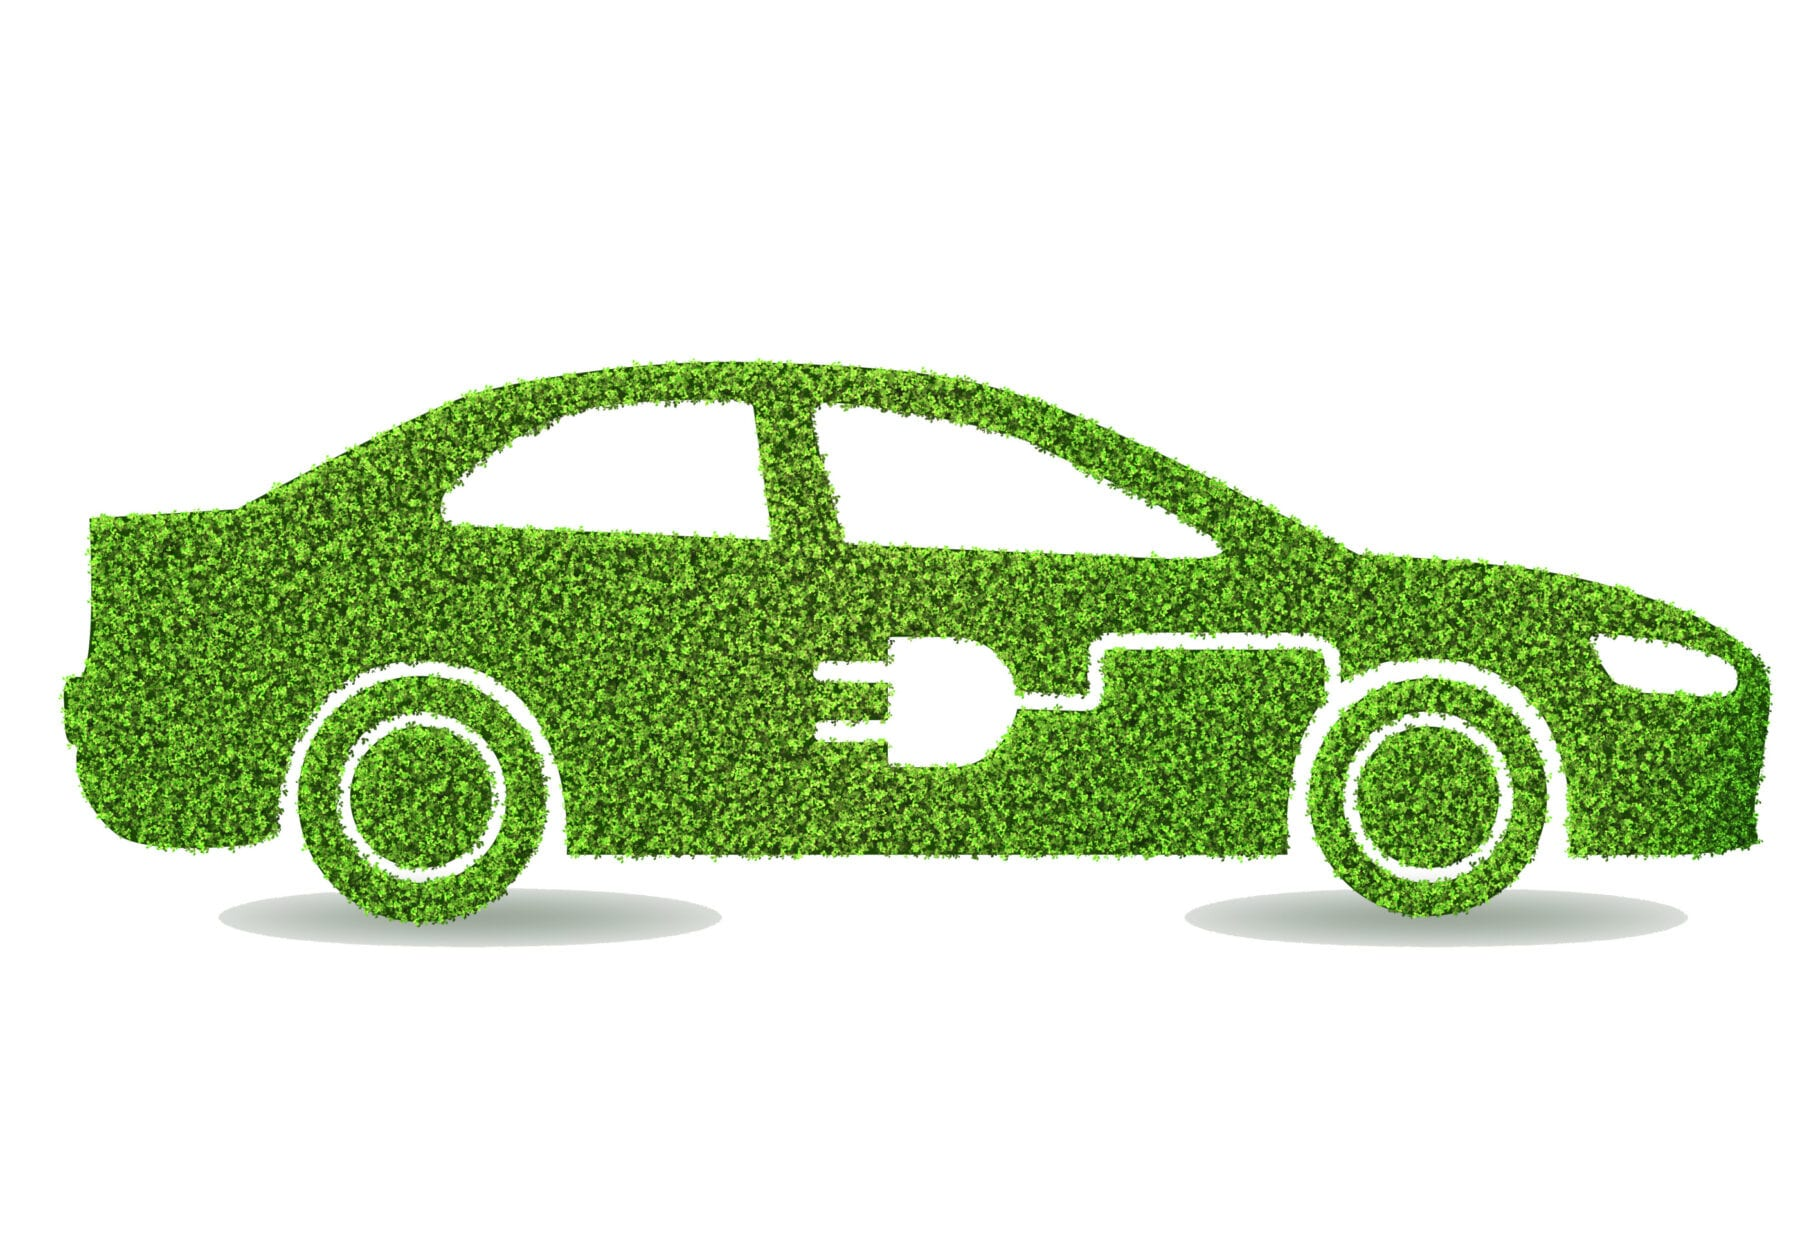 Green environmentally friendly vehicle concept - 3d rendering via Imperial College London